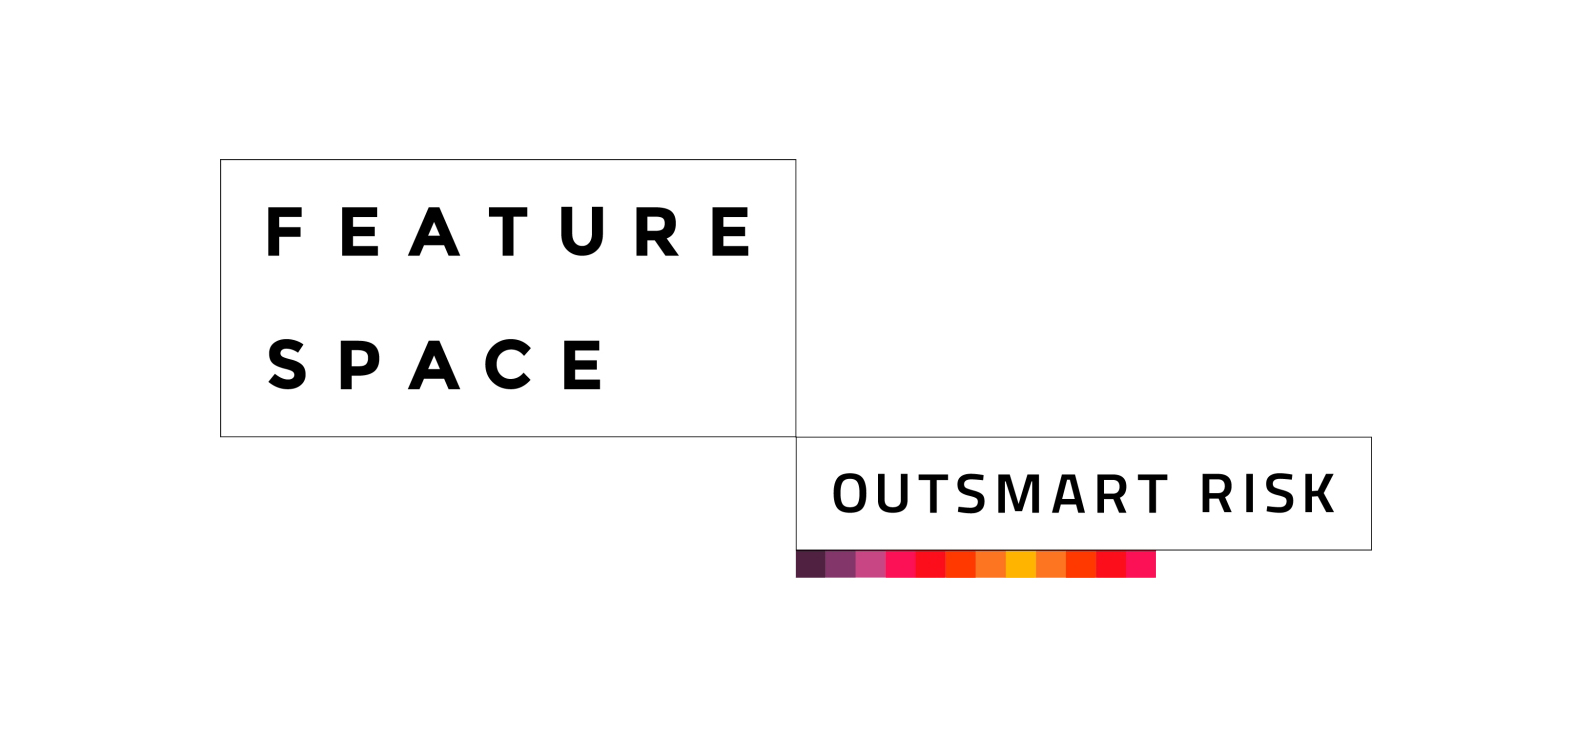 Play Digital Selects Featurespace to Defend Against Payments Fraud on Newly Launched Platform